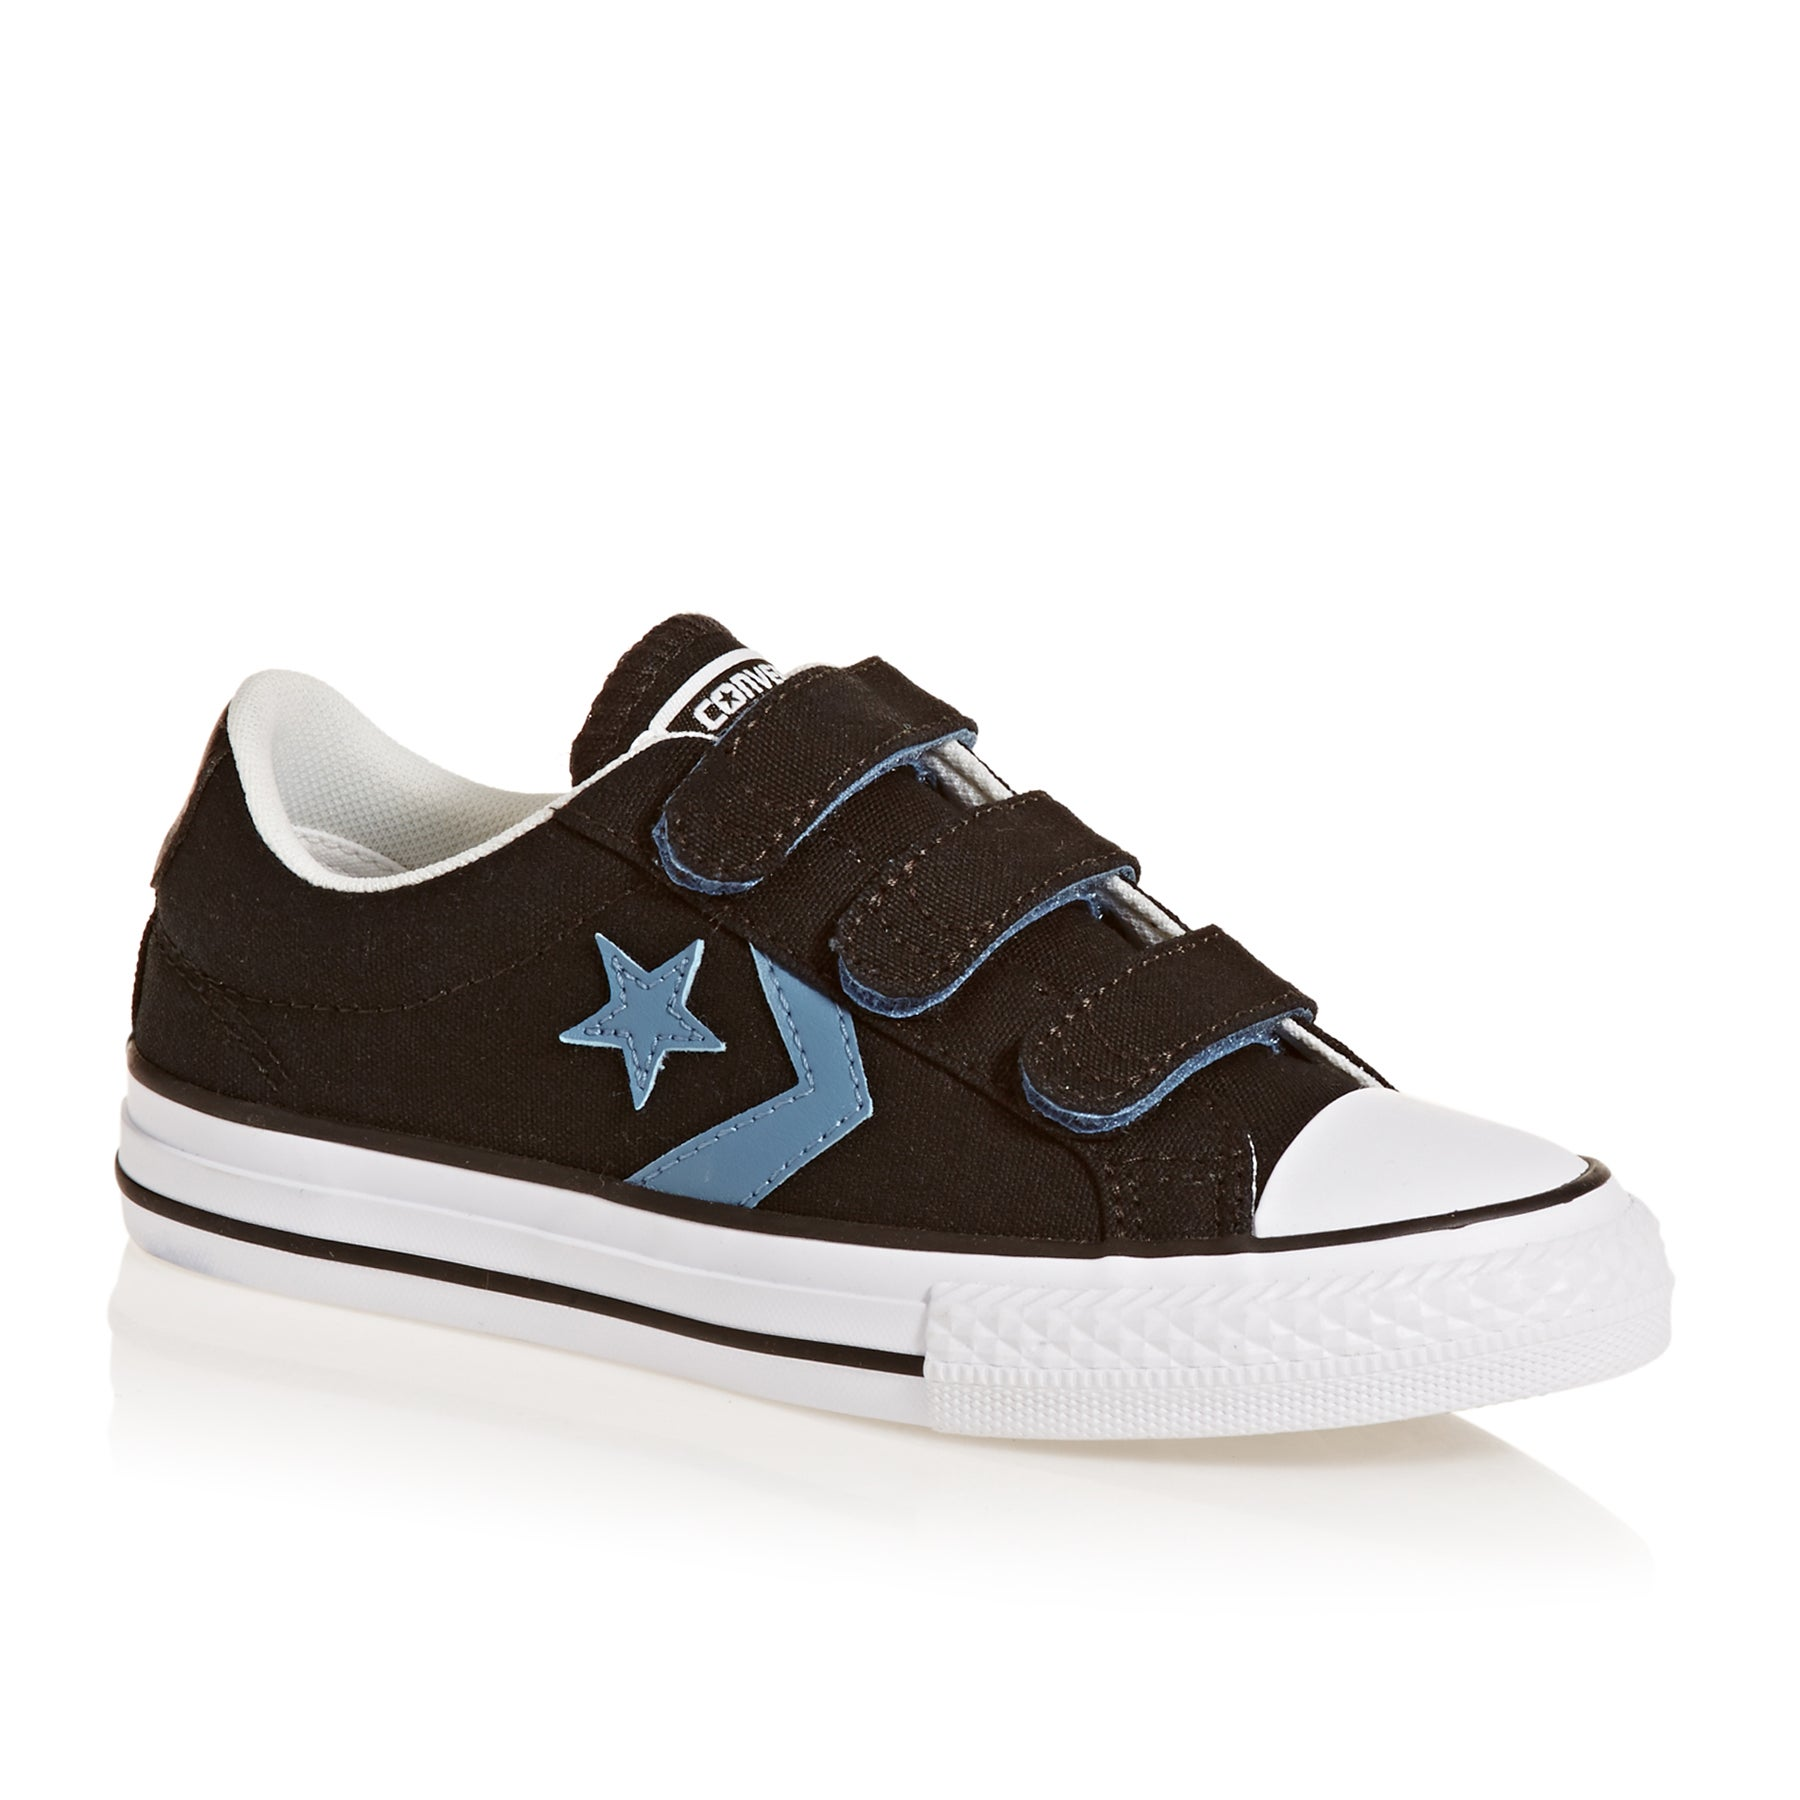 Converse Star Player 3v Ox Junior Boys Shoes - Black/aegean Storm/white